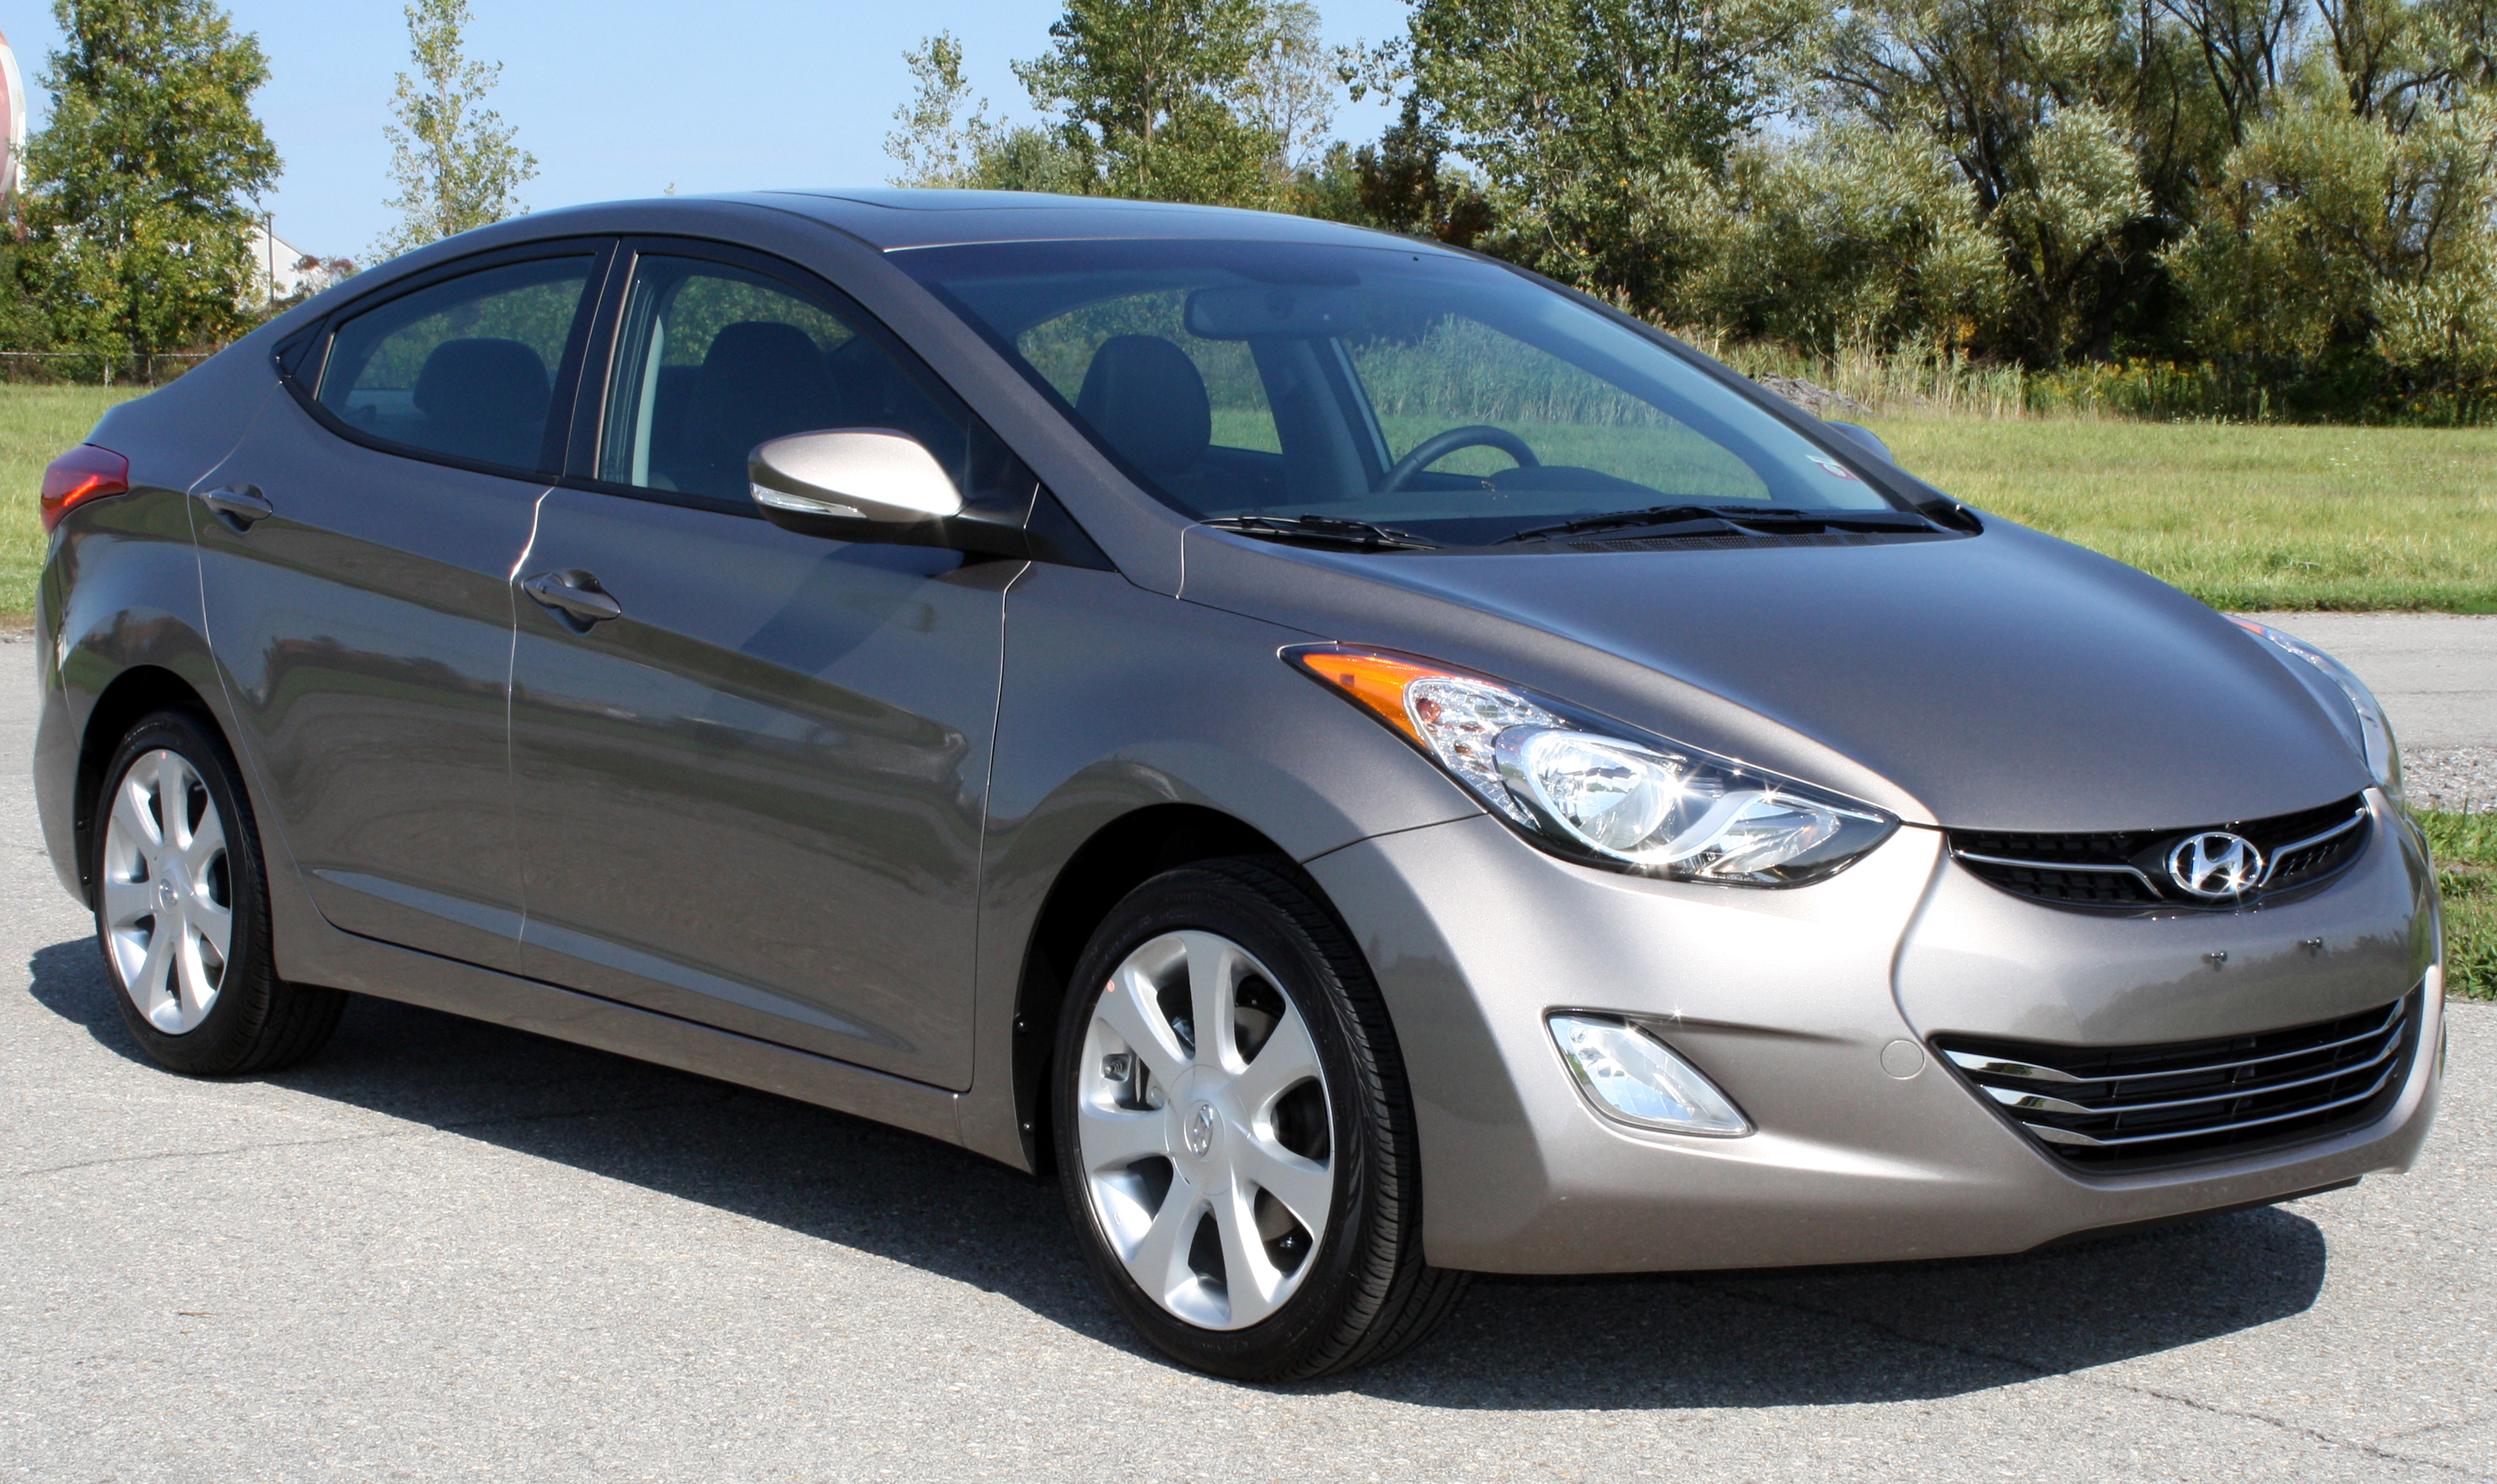 2012 Hyundai Elantra Limited 2016 Hyundai Elantra GT Limited. Smart  Purchase Pricing   Priced To Sell Immediately. Although Reasonable Effort  Is Made To ...